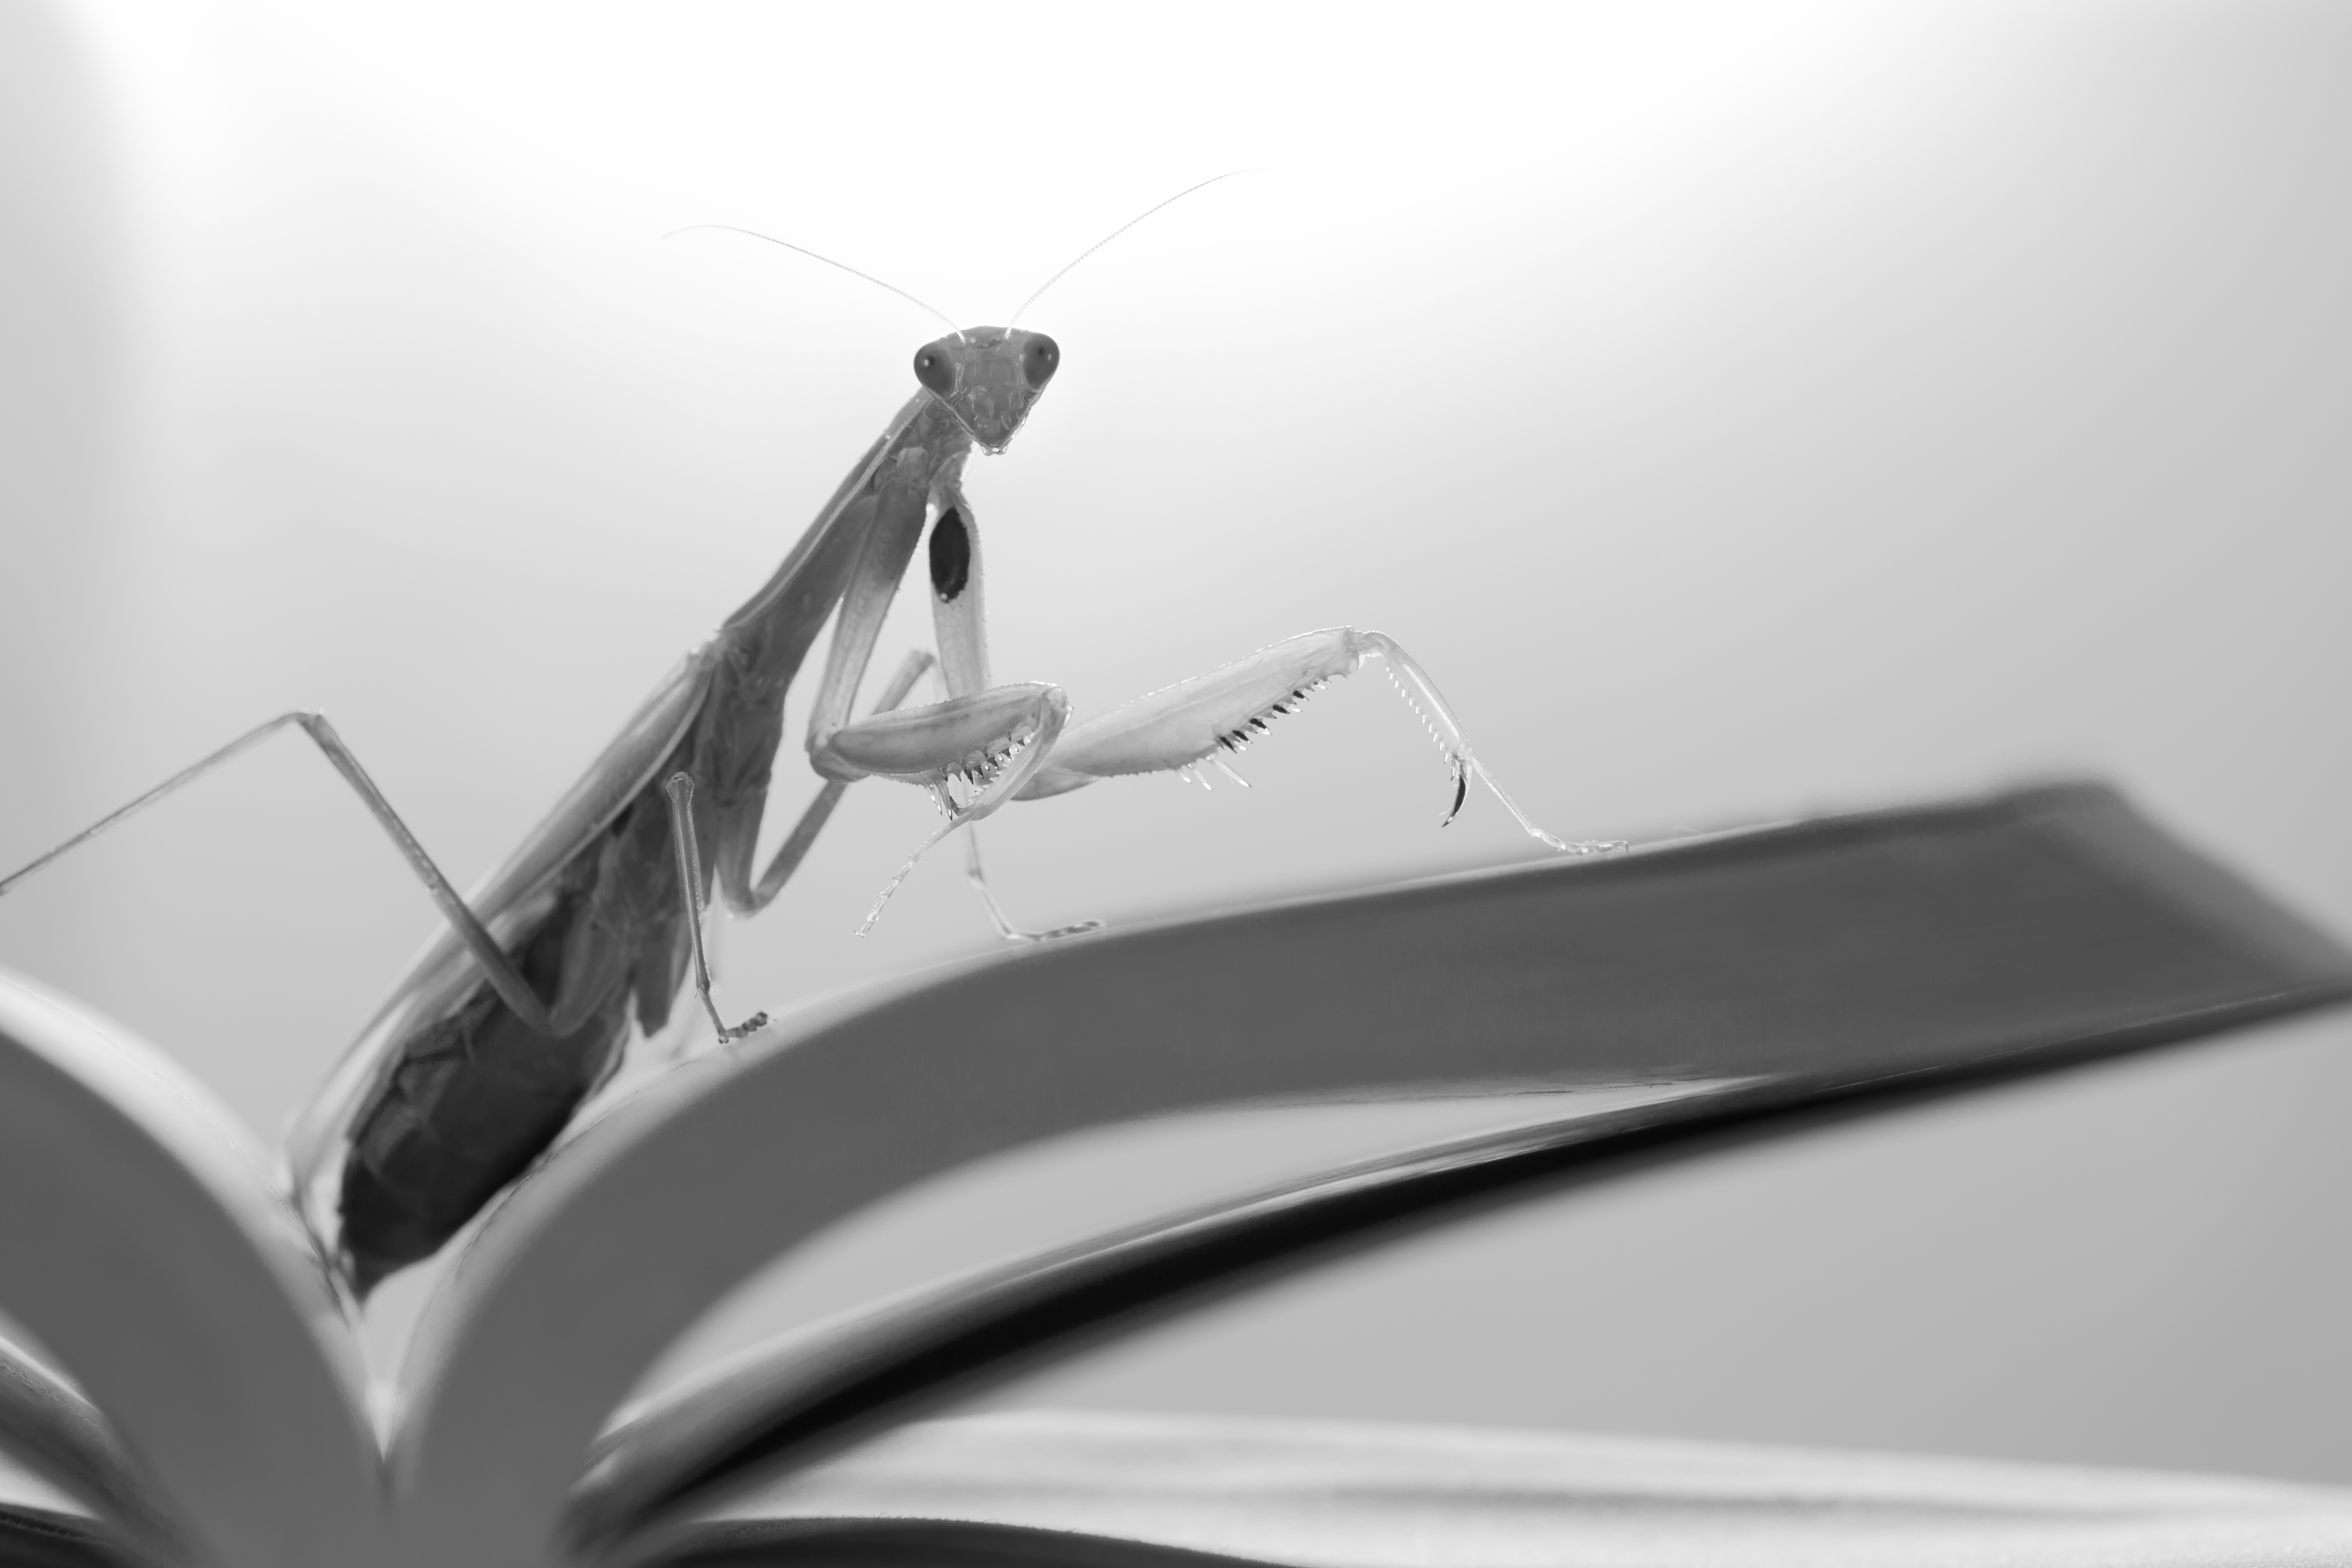 Praying mantis in the library